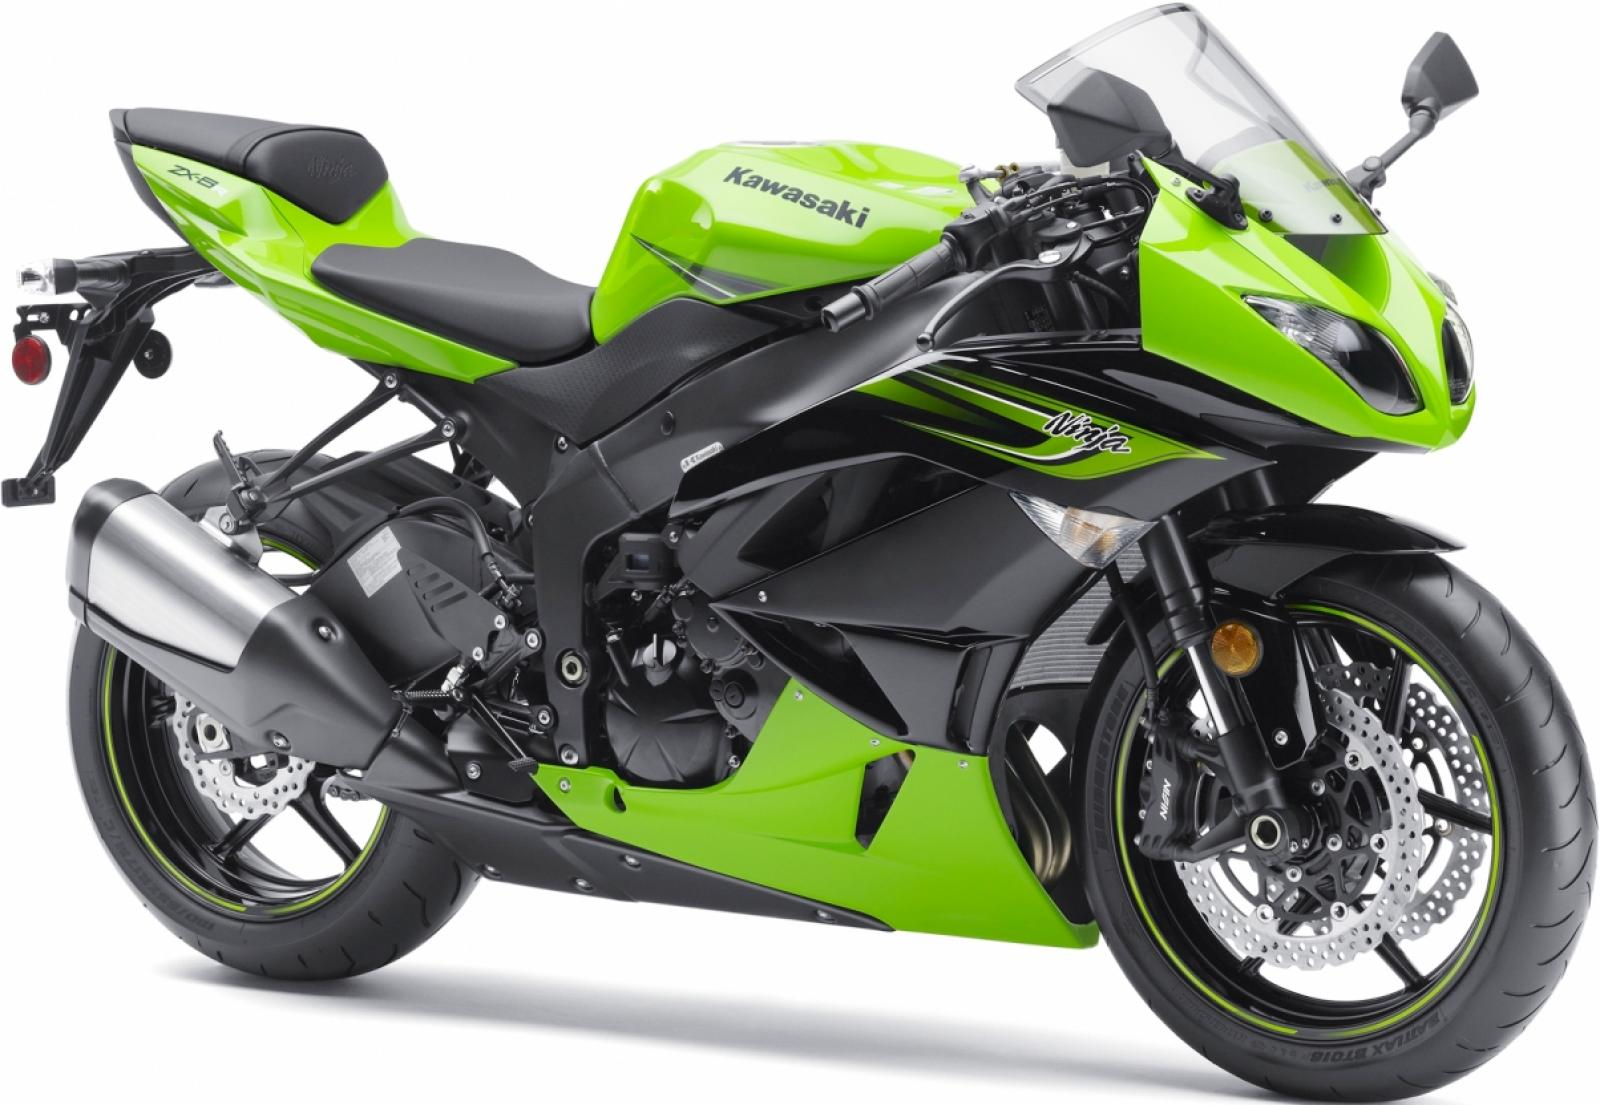 2011 kawasaki ninja zx 6r moto zombdrive com. Black Bedroom Furniture Sets. Home Design Ideas